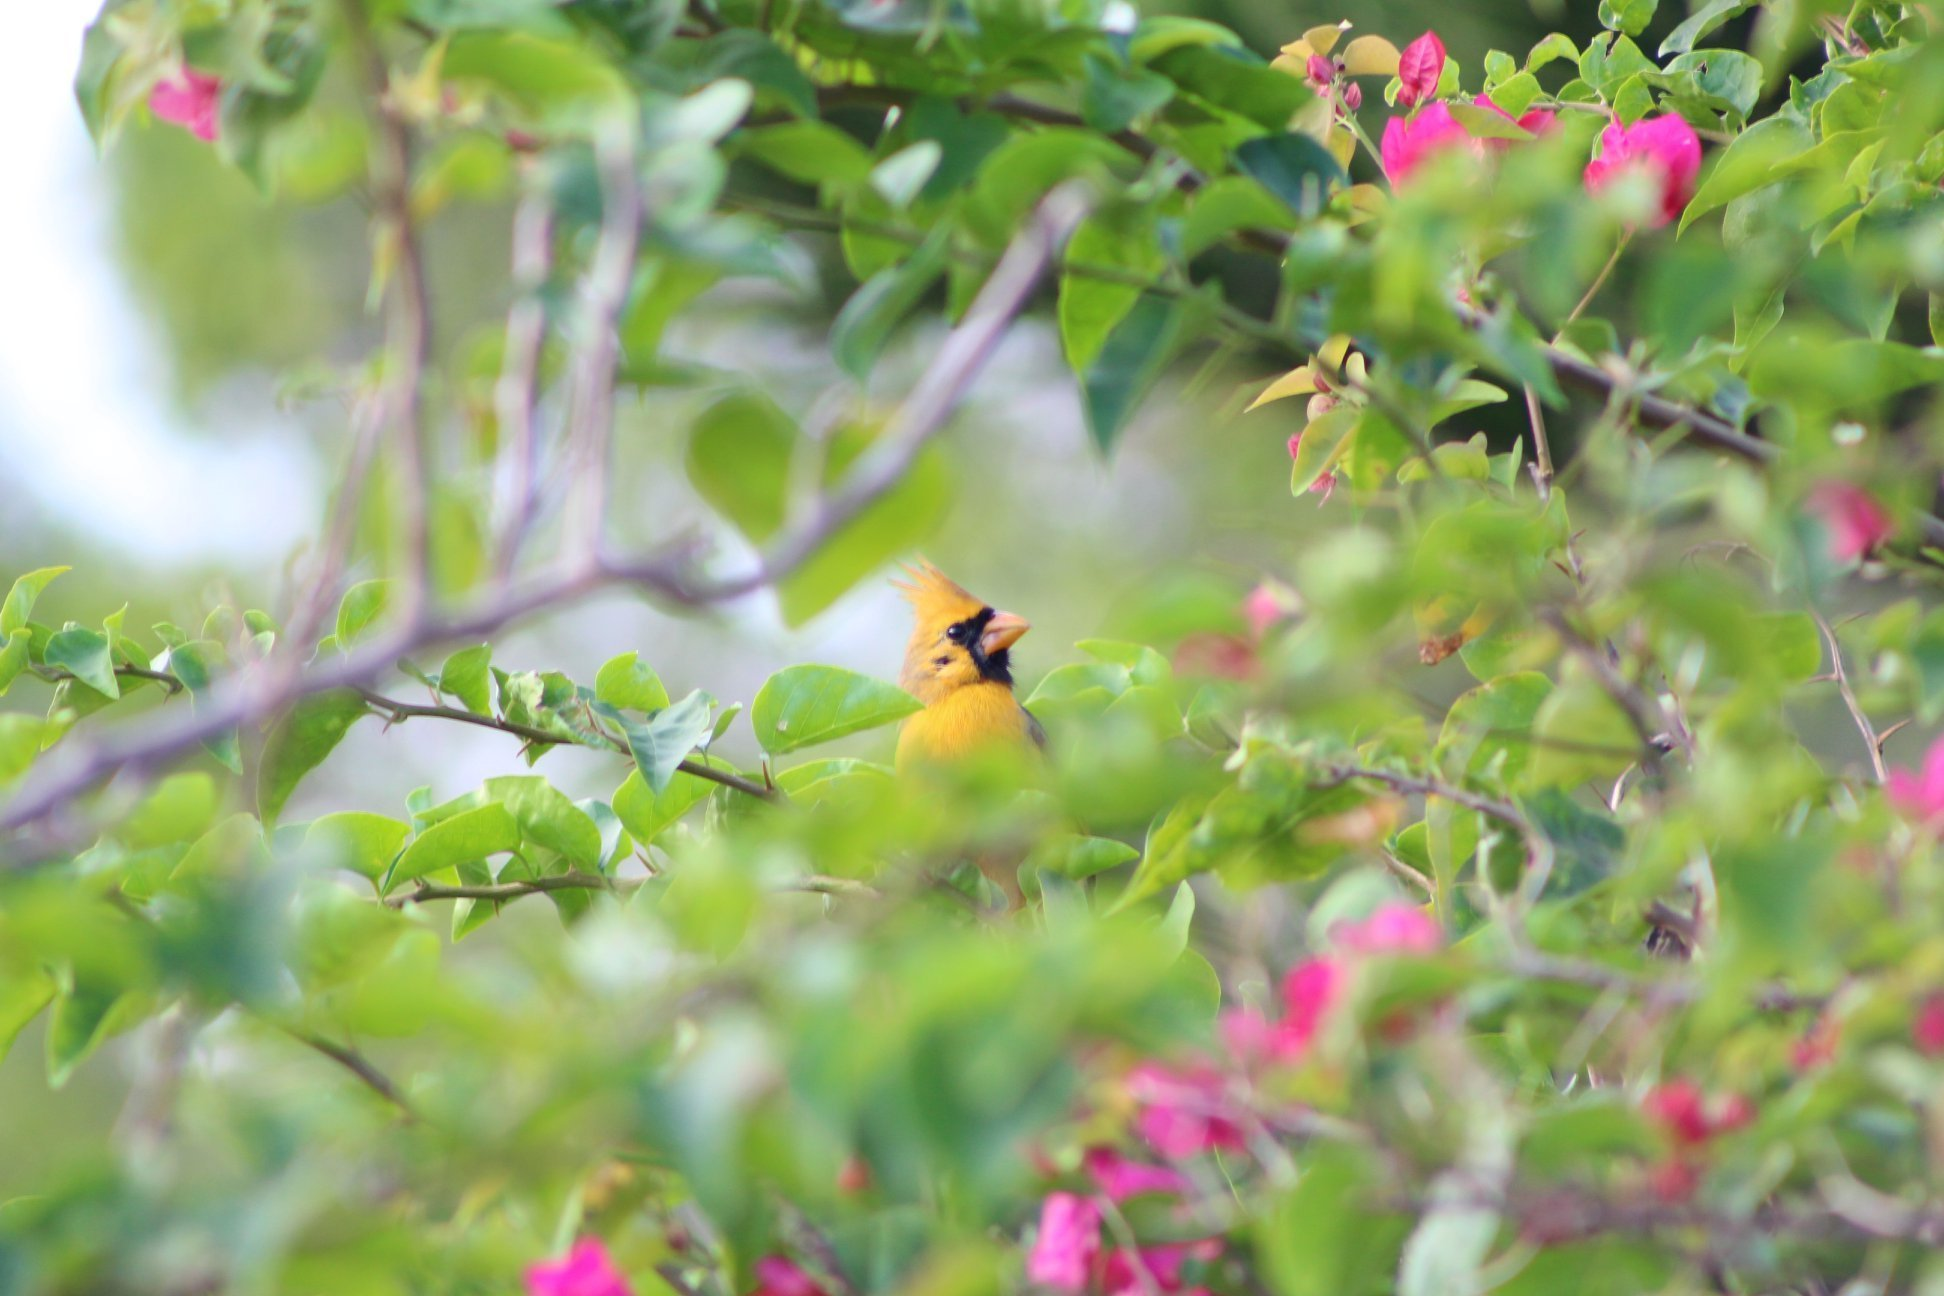 An incredibly rare yellow cardinal has been spotted in Florida. An expert says it's 'one in a million'